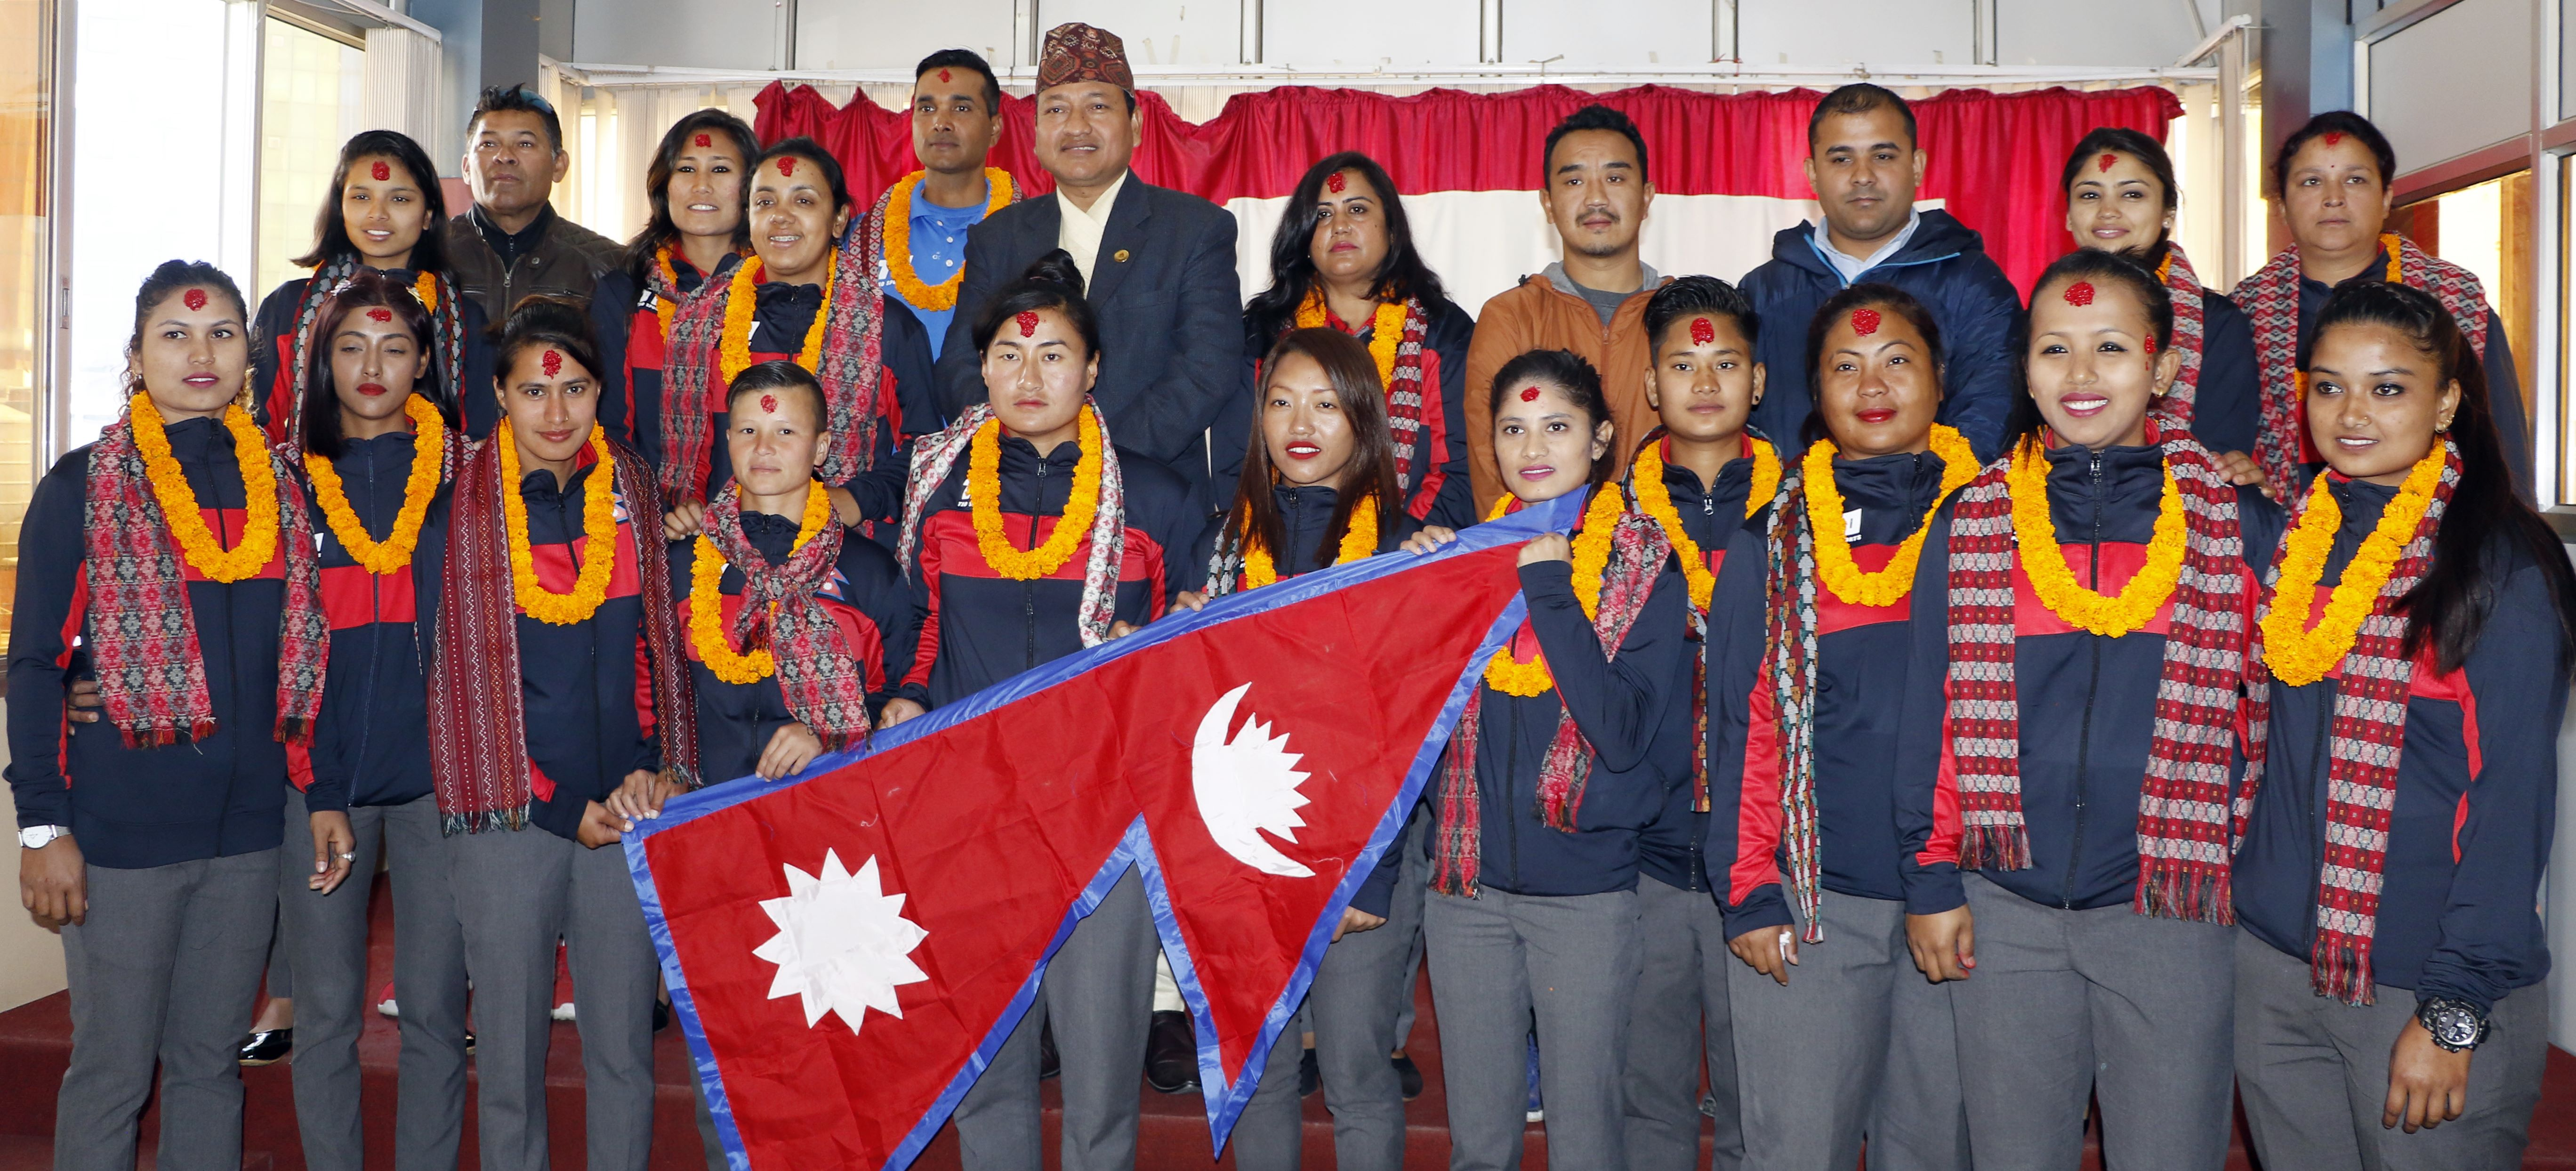 Nepal women national cricket team members pose for a group photo with officials after a farewell programme in Kathmandu on Saturday, ahead of their departure to Thailand. Photo: THT